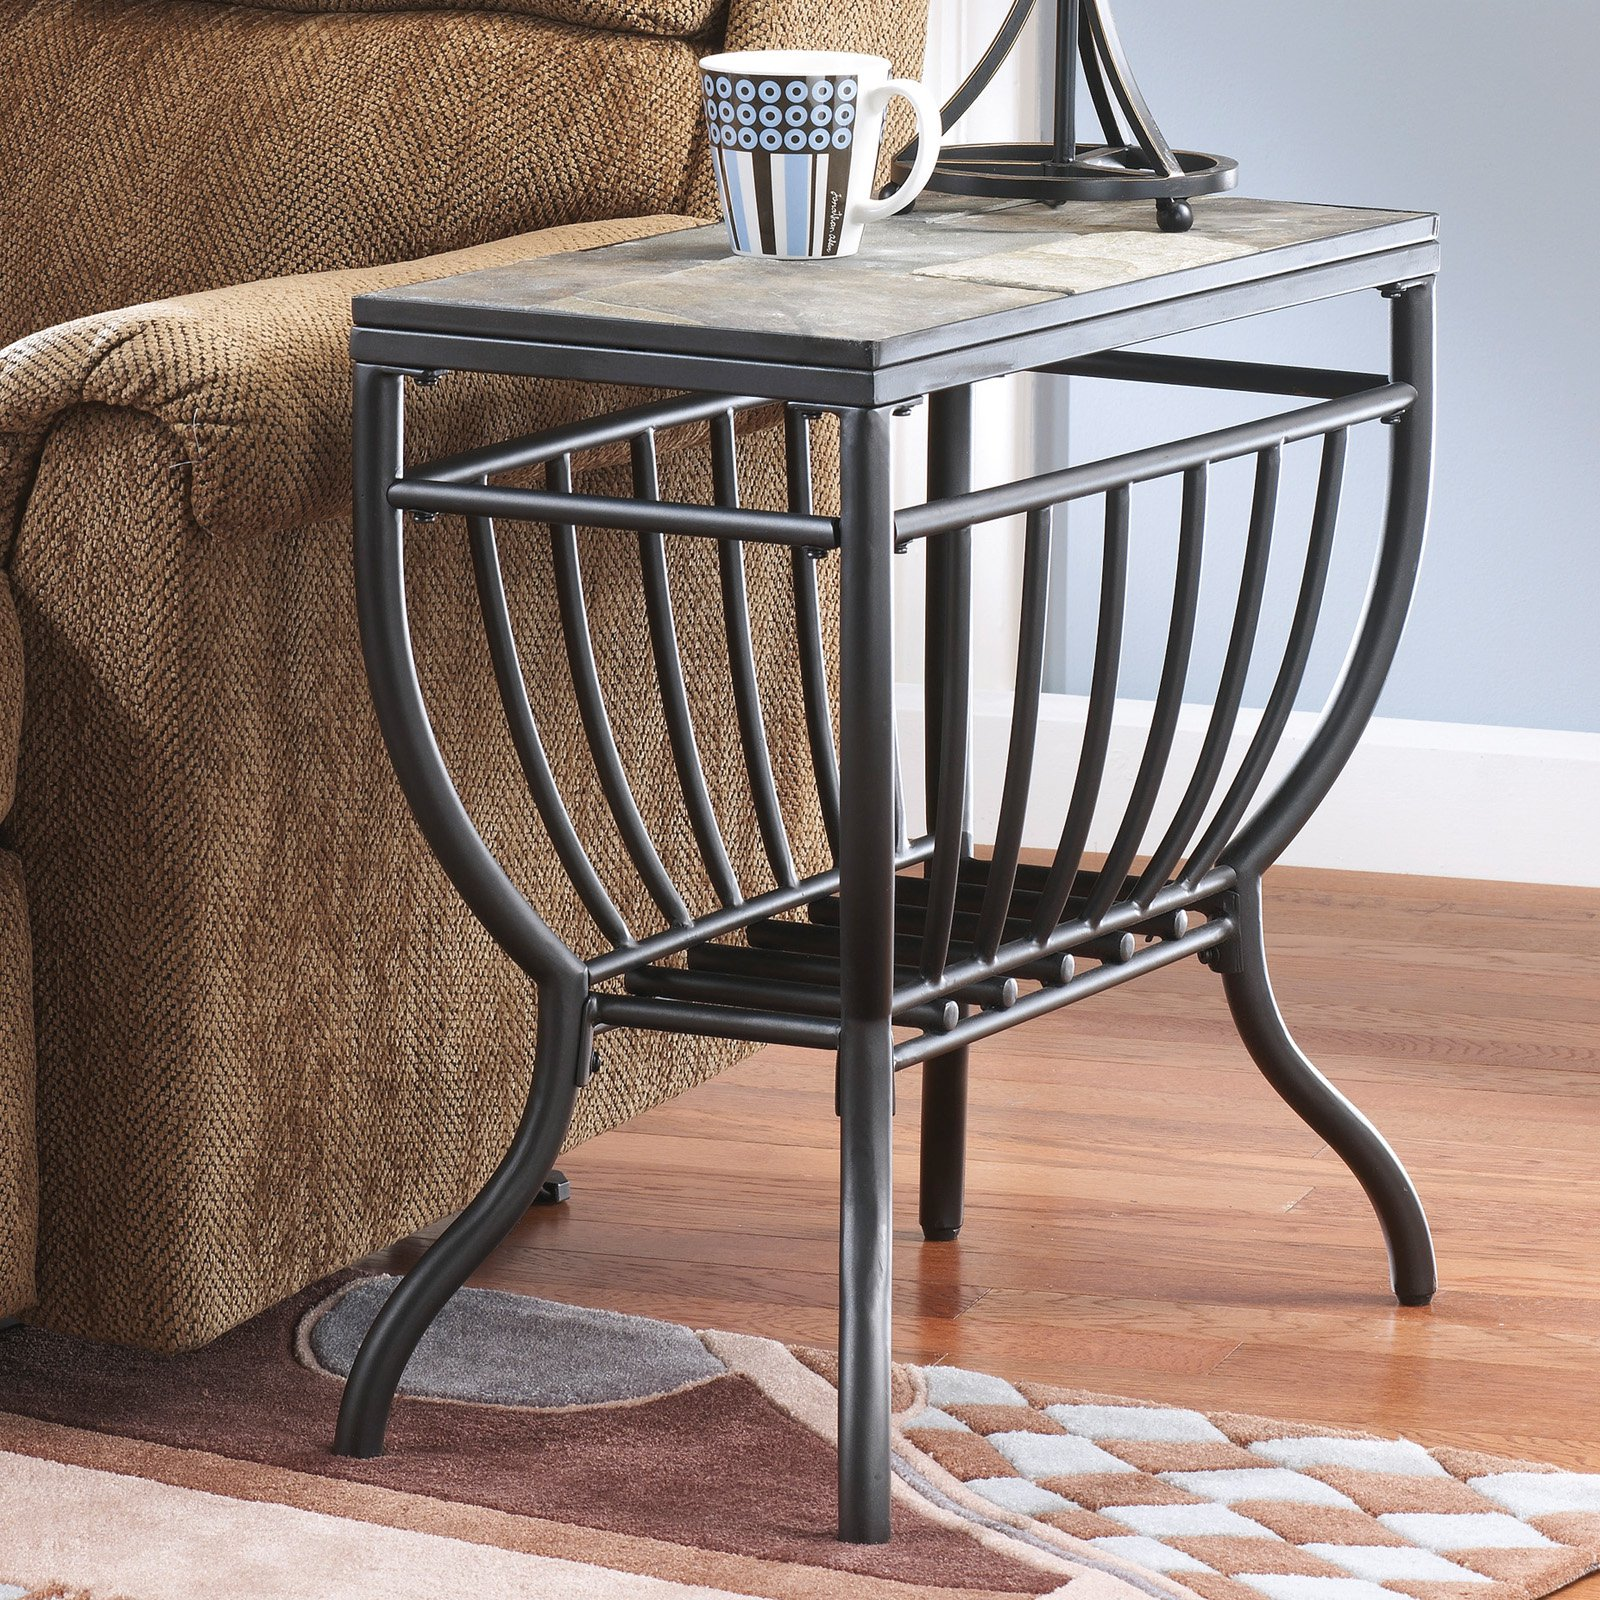 signature design ashley antigo chair side end table black slate tables furniture lamp styles small wrought iron corner night stands dog crate cart metal bench legs genuine leather